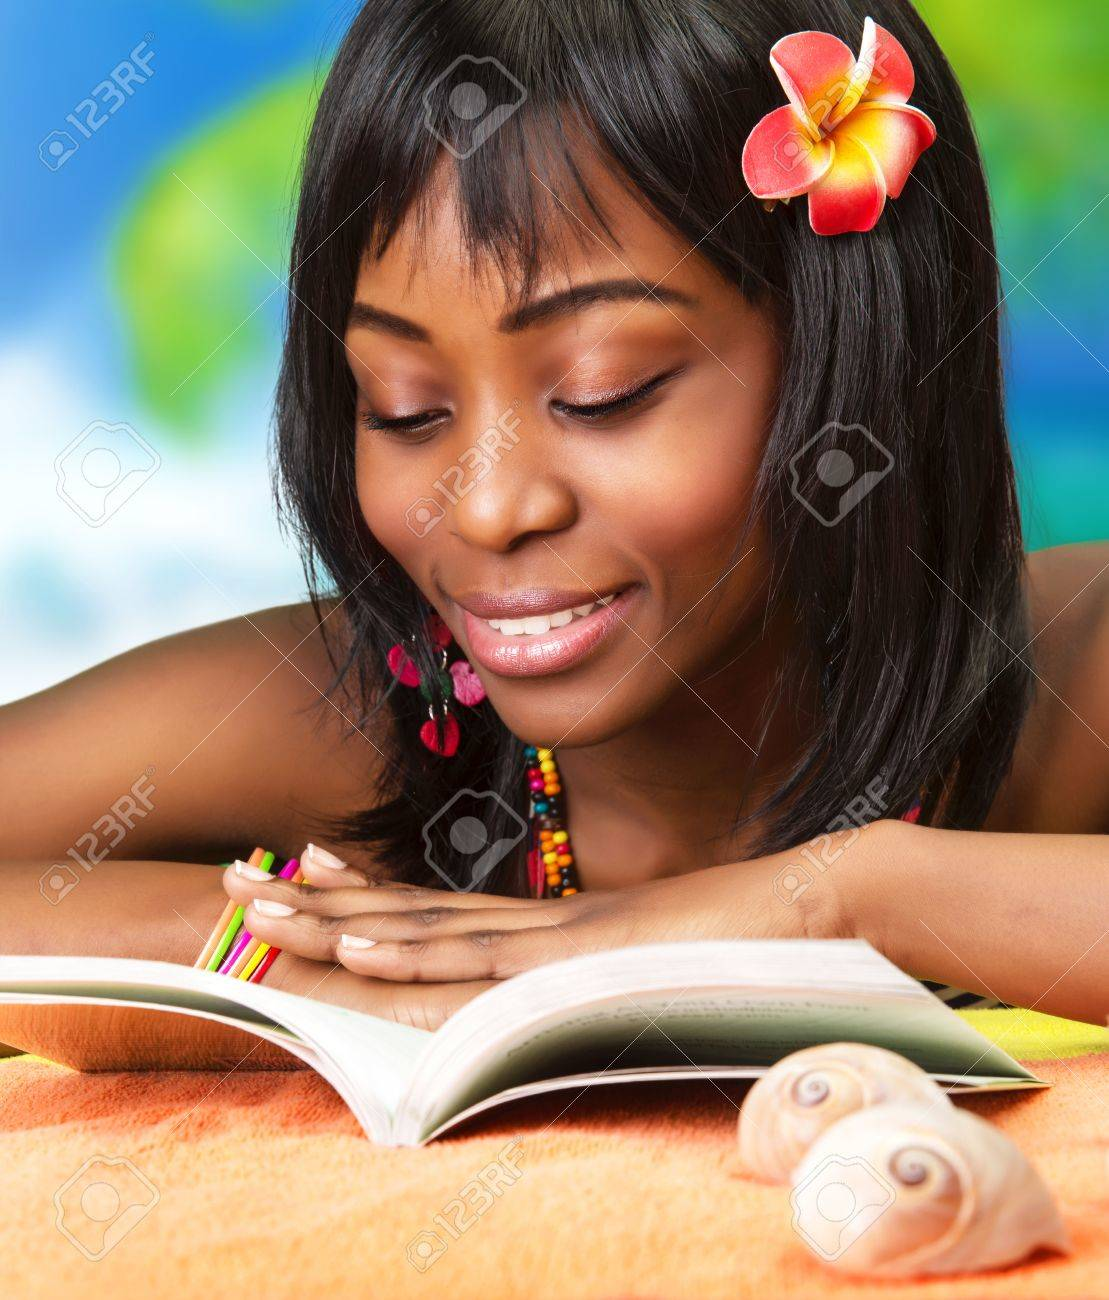 Photo of beautiful african woman read book on the beach, pretty black female enjoying summer vacation, cute young lady with red flowers in dark hair taking sunbath, happy lifestyle, luxury resort Stock Photo - 18314861